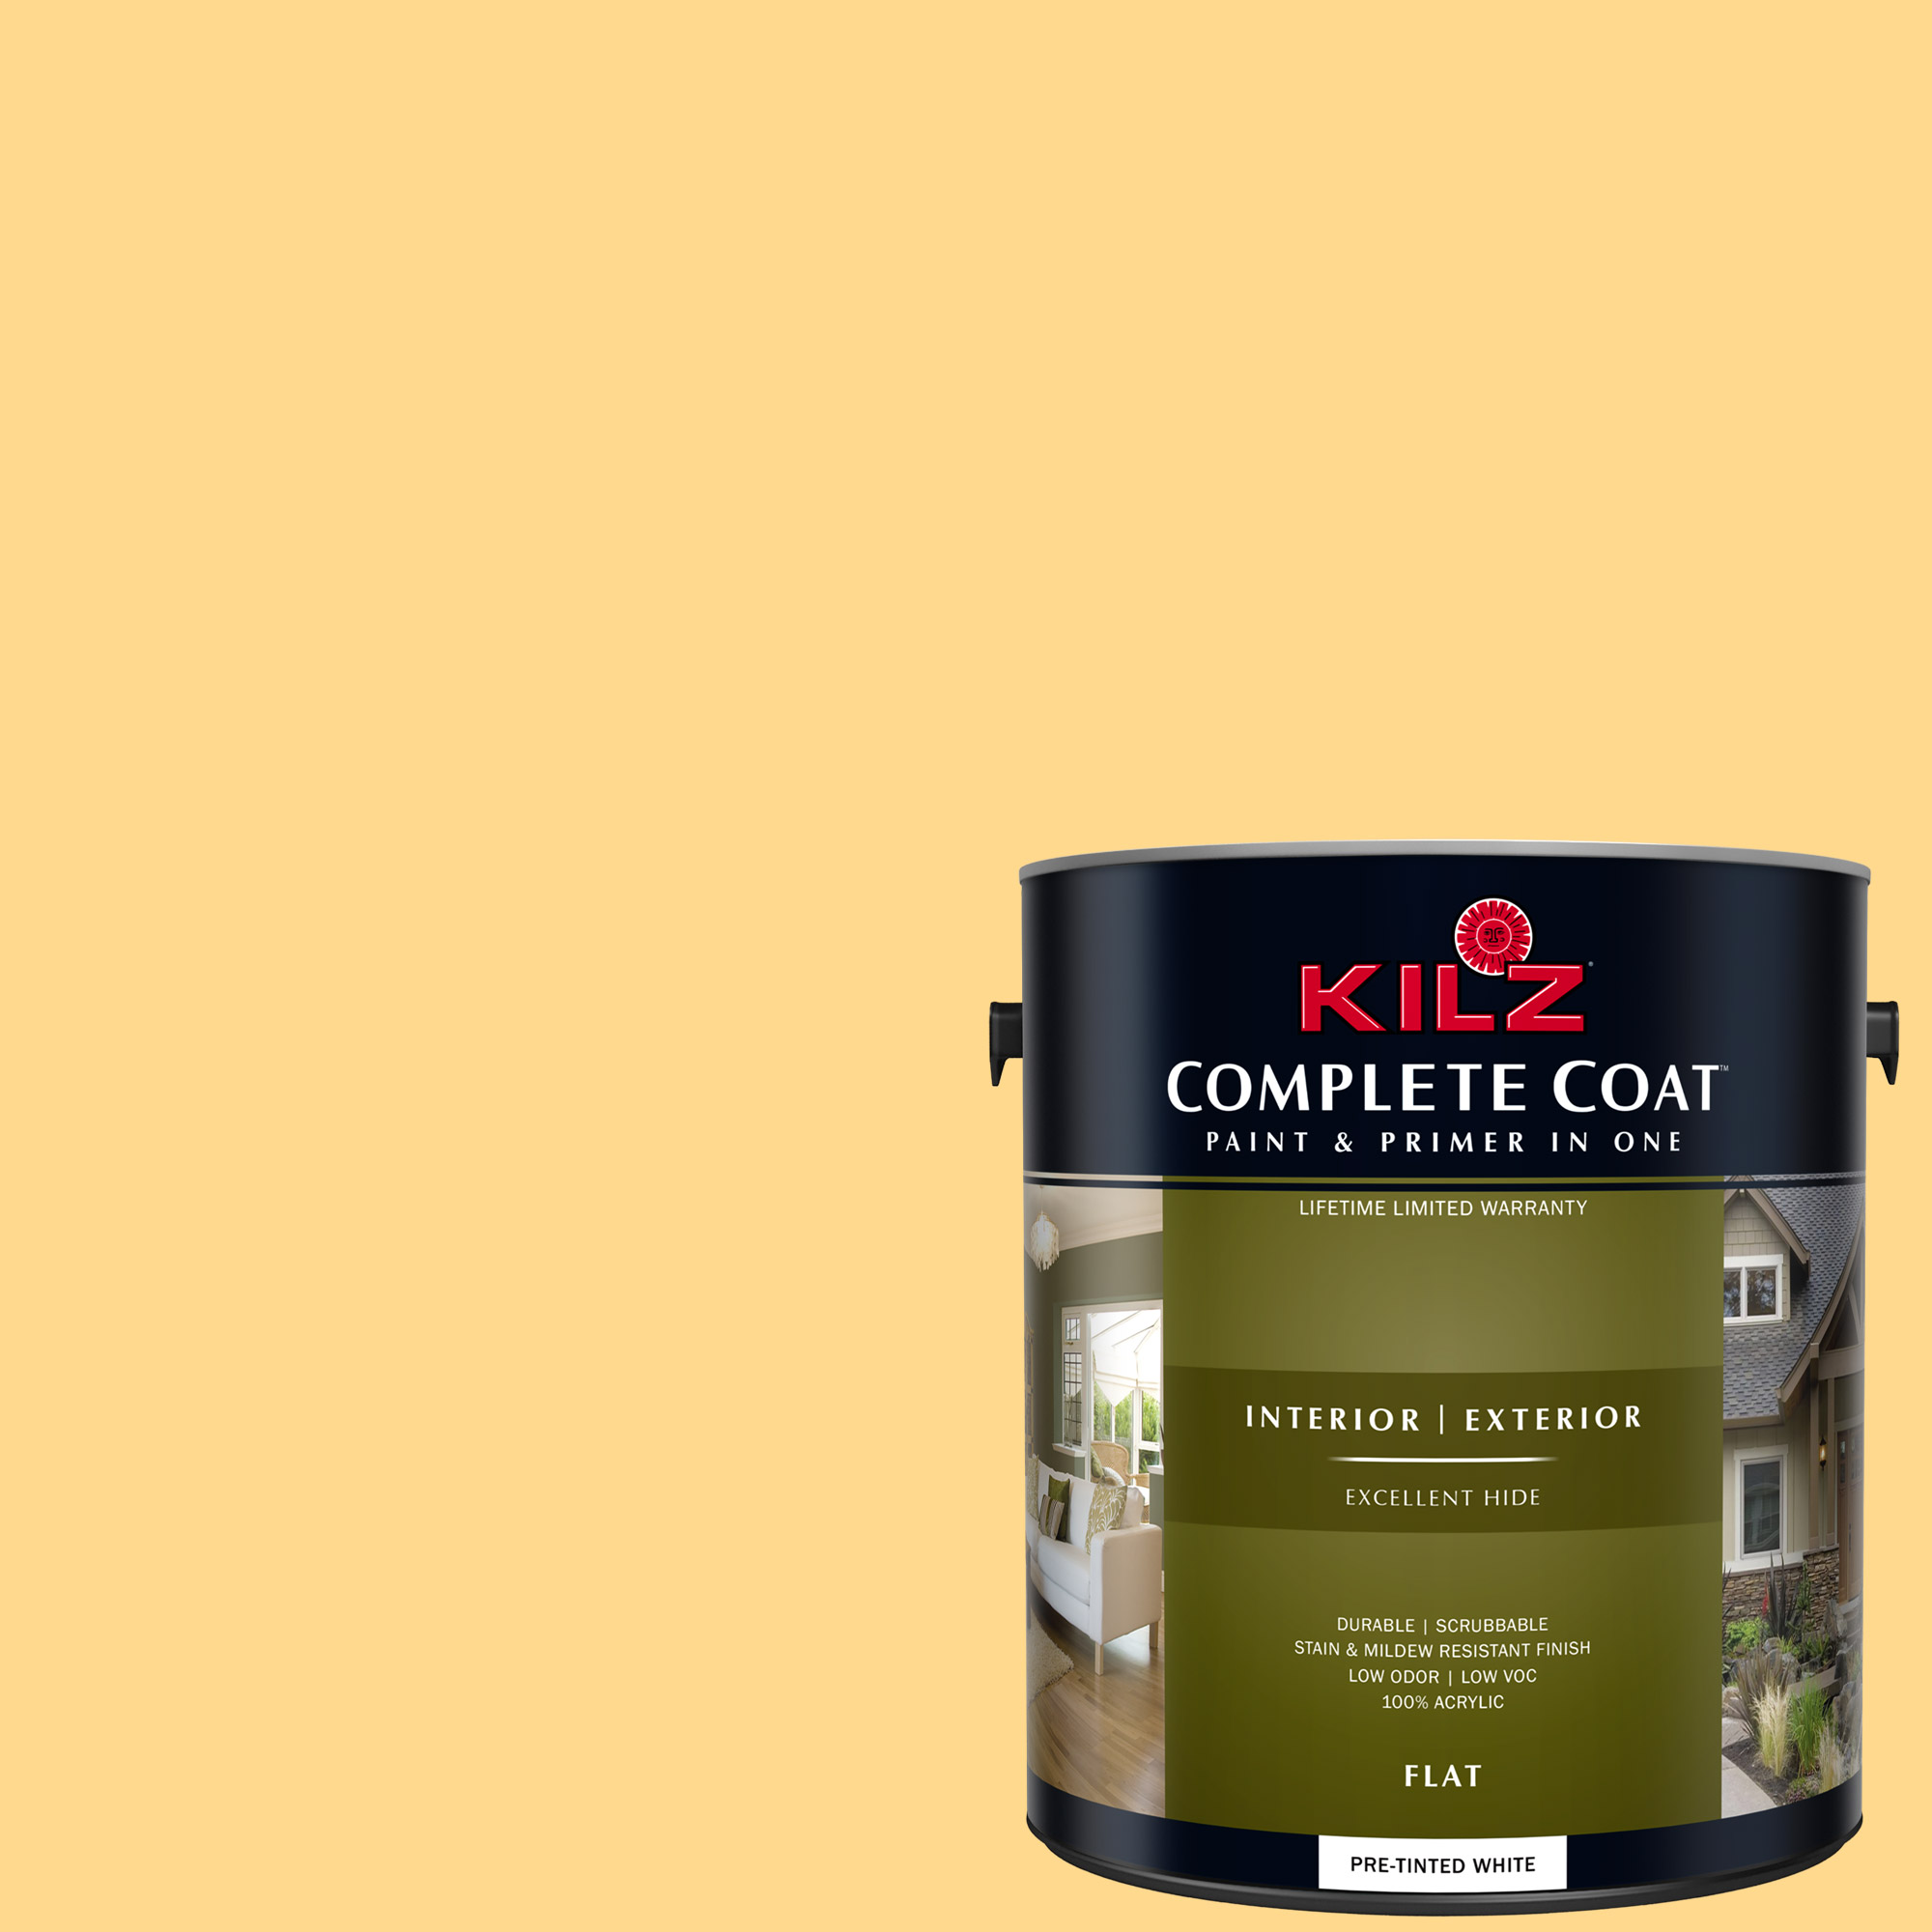 KILZ COMPLETE COAT Interior/Exterior Paint & Primer in One #LE150-01 Yellow Duckling